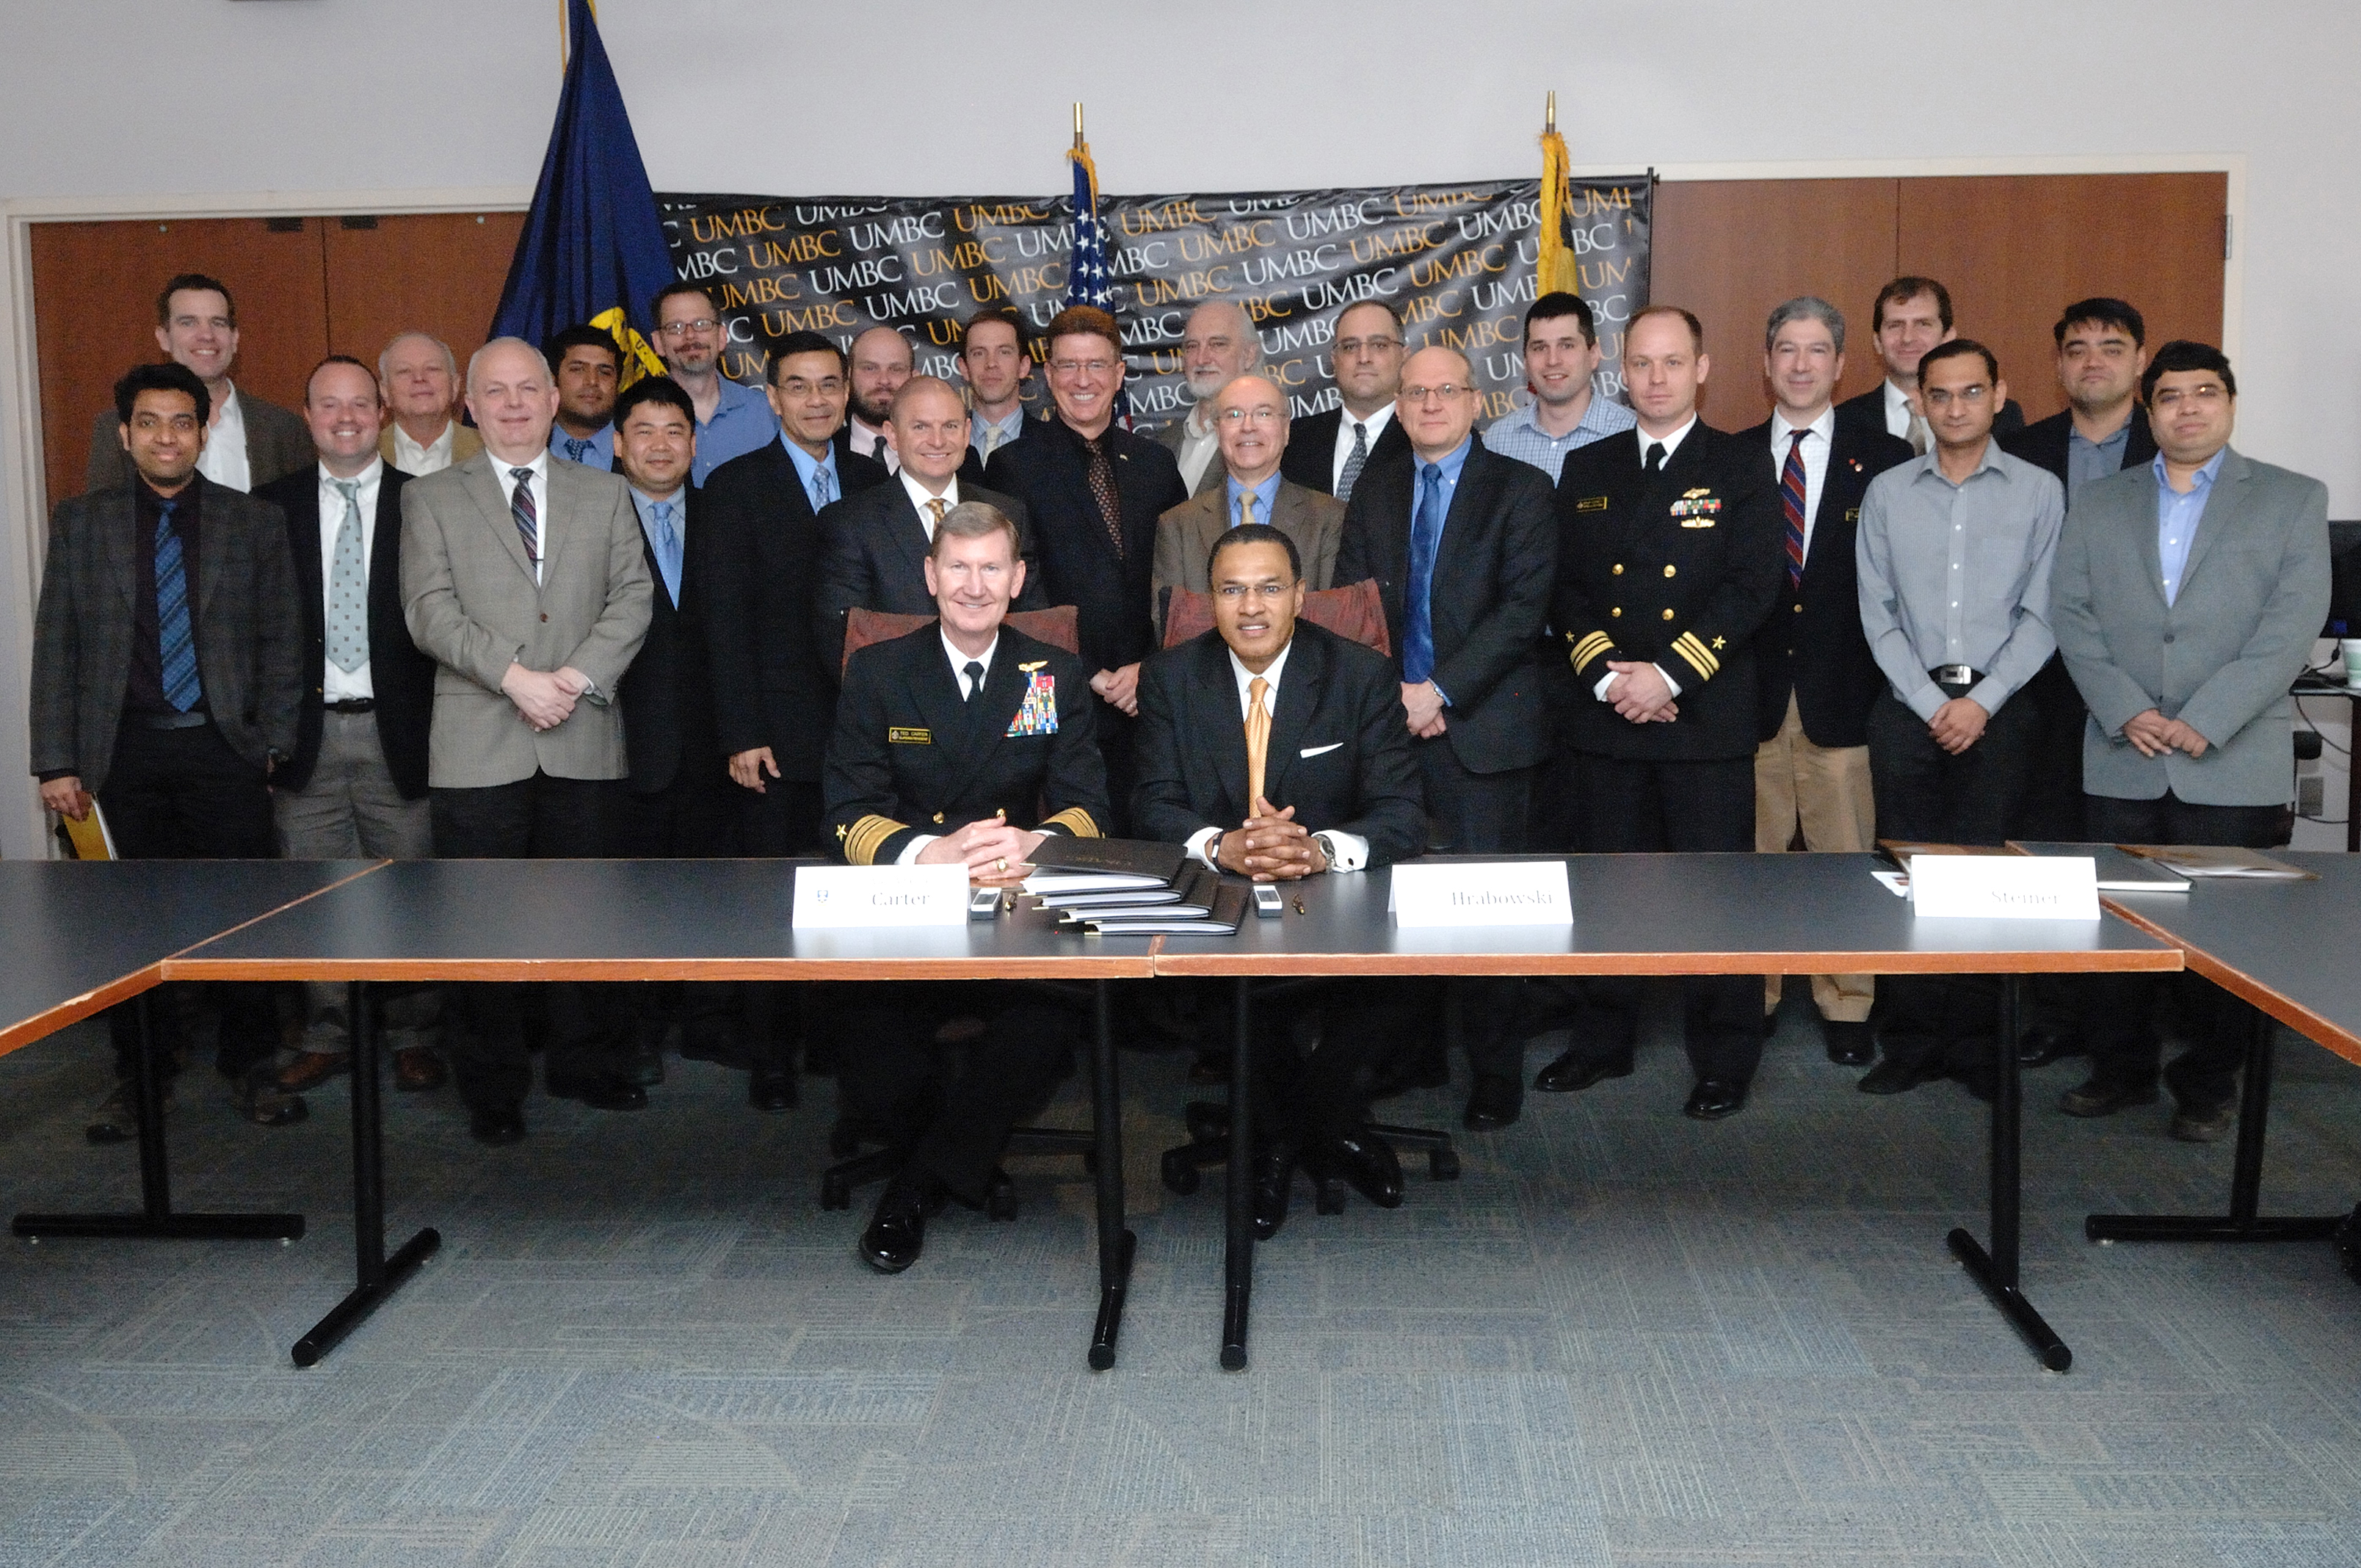 IS Professors Invited to Navy CRADA Signing Ceremony